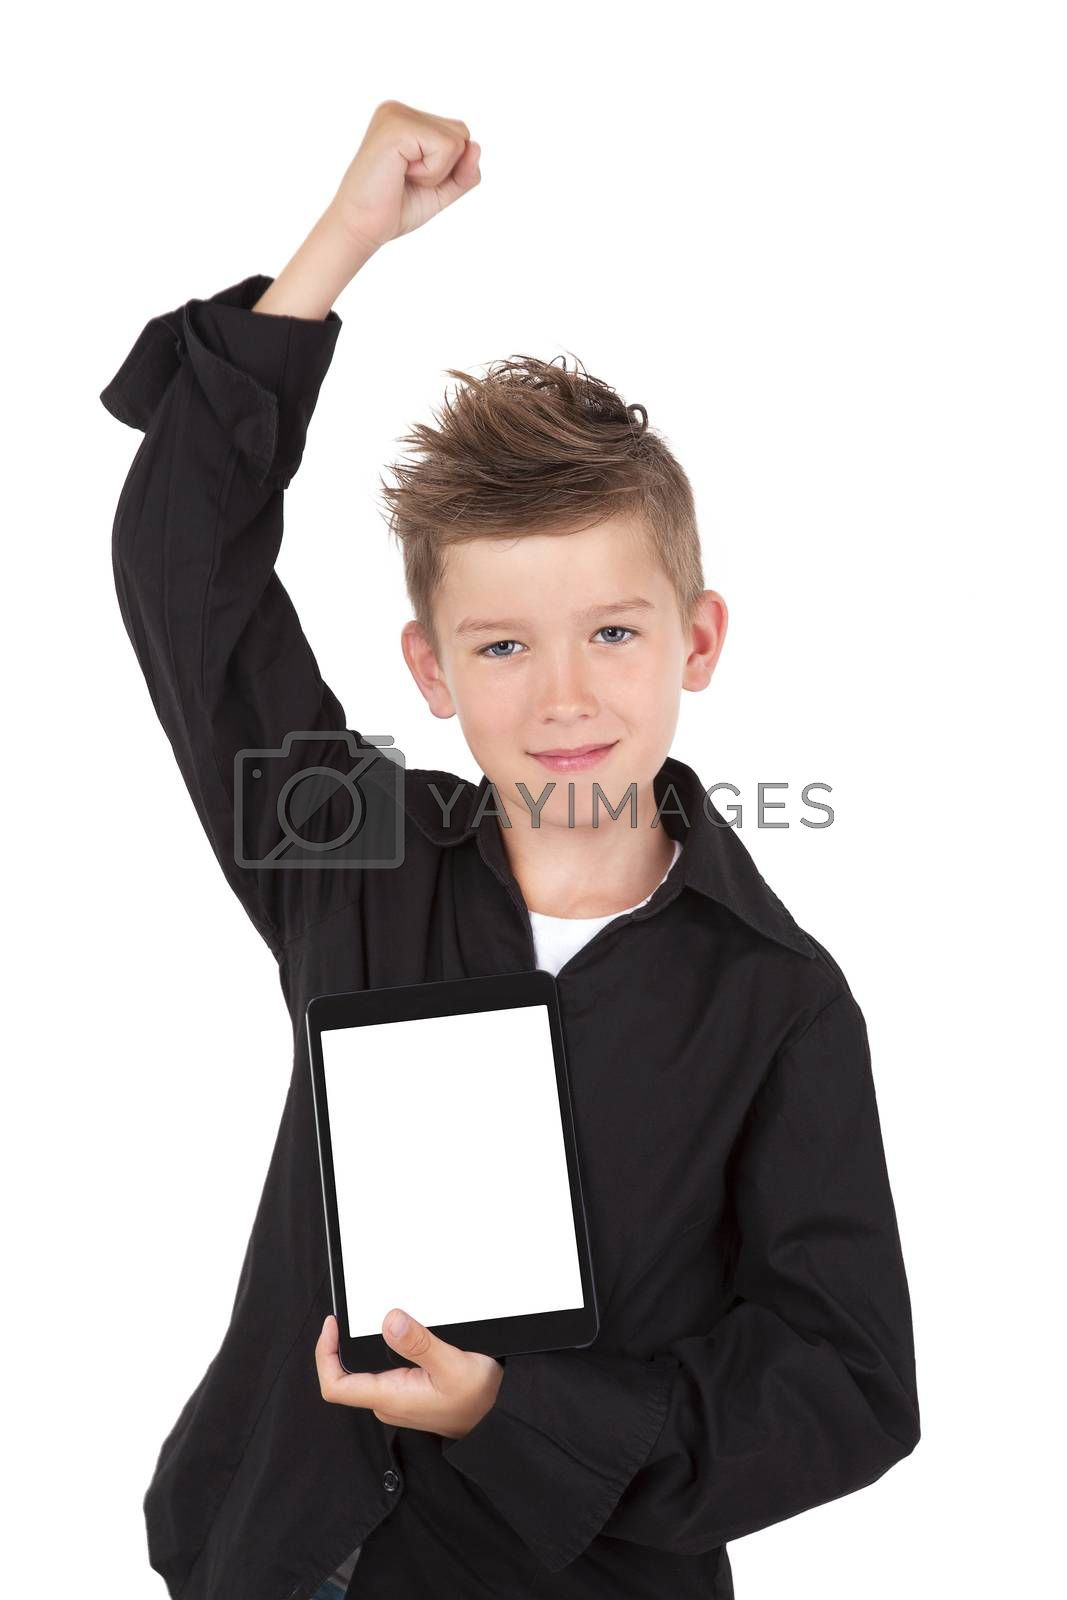 Successful boy with hand up holding tablet with white screen facing camera isolated on white background.